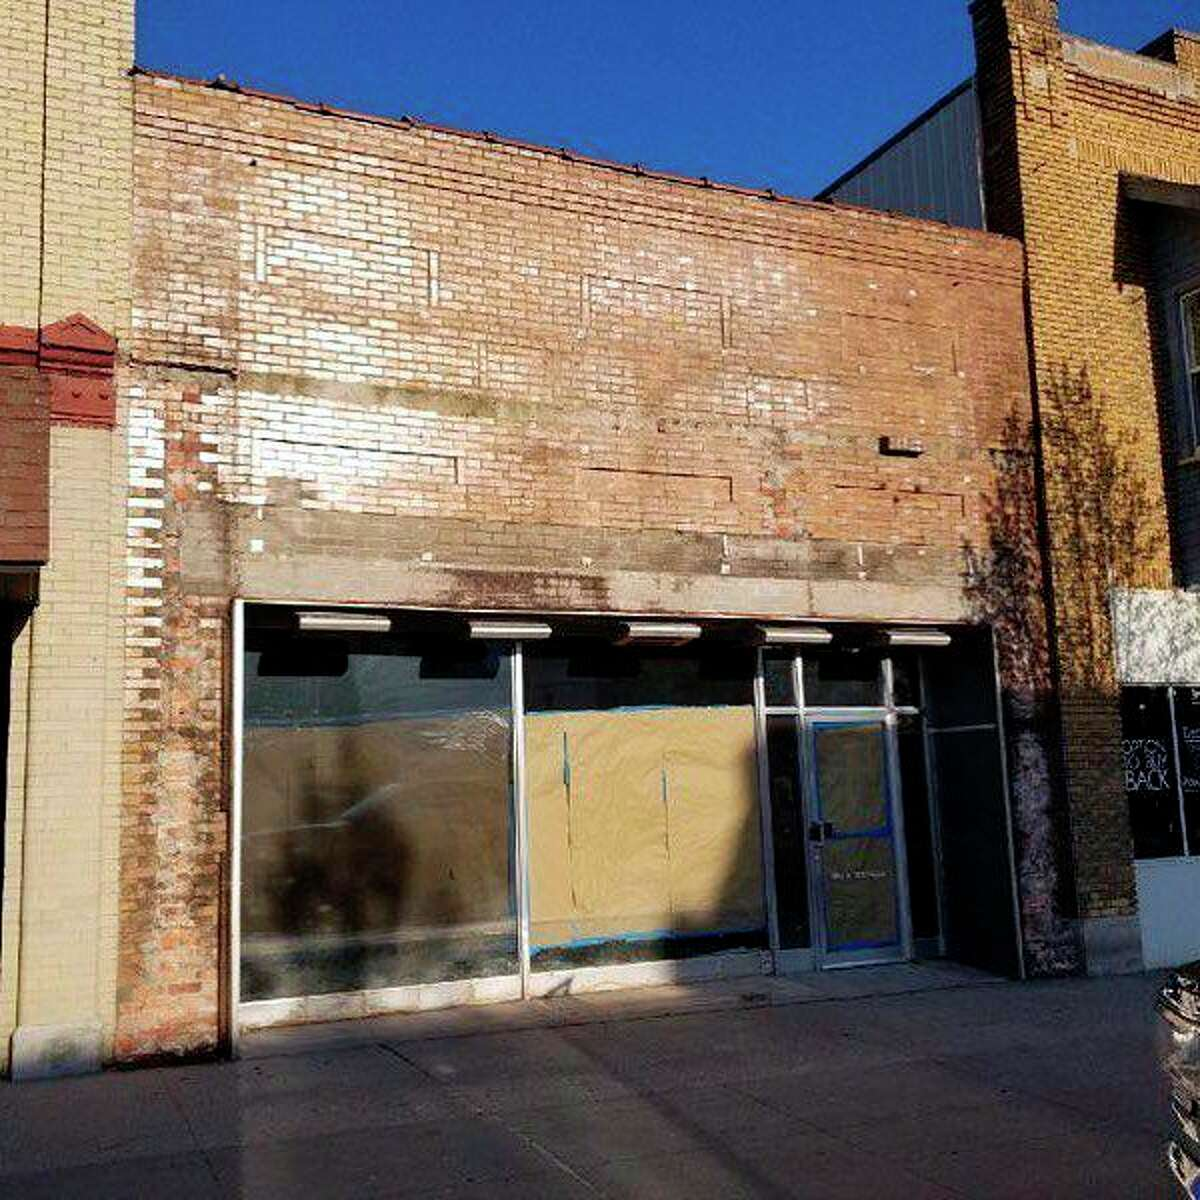 This image shows what the Lake Life Farms' storefront looked like prior to owners renovating it for their new medical marijuana business. Lake Life Farms is now open and located at 208 S. Michigan Avenue in downtown Big Rapids. (Photo courtesy of Lake Life Farms)